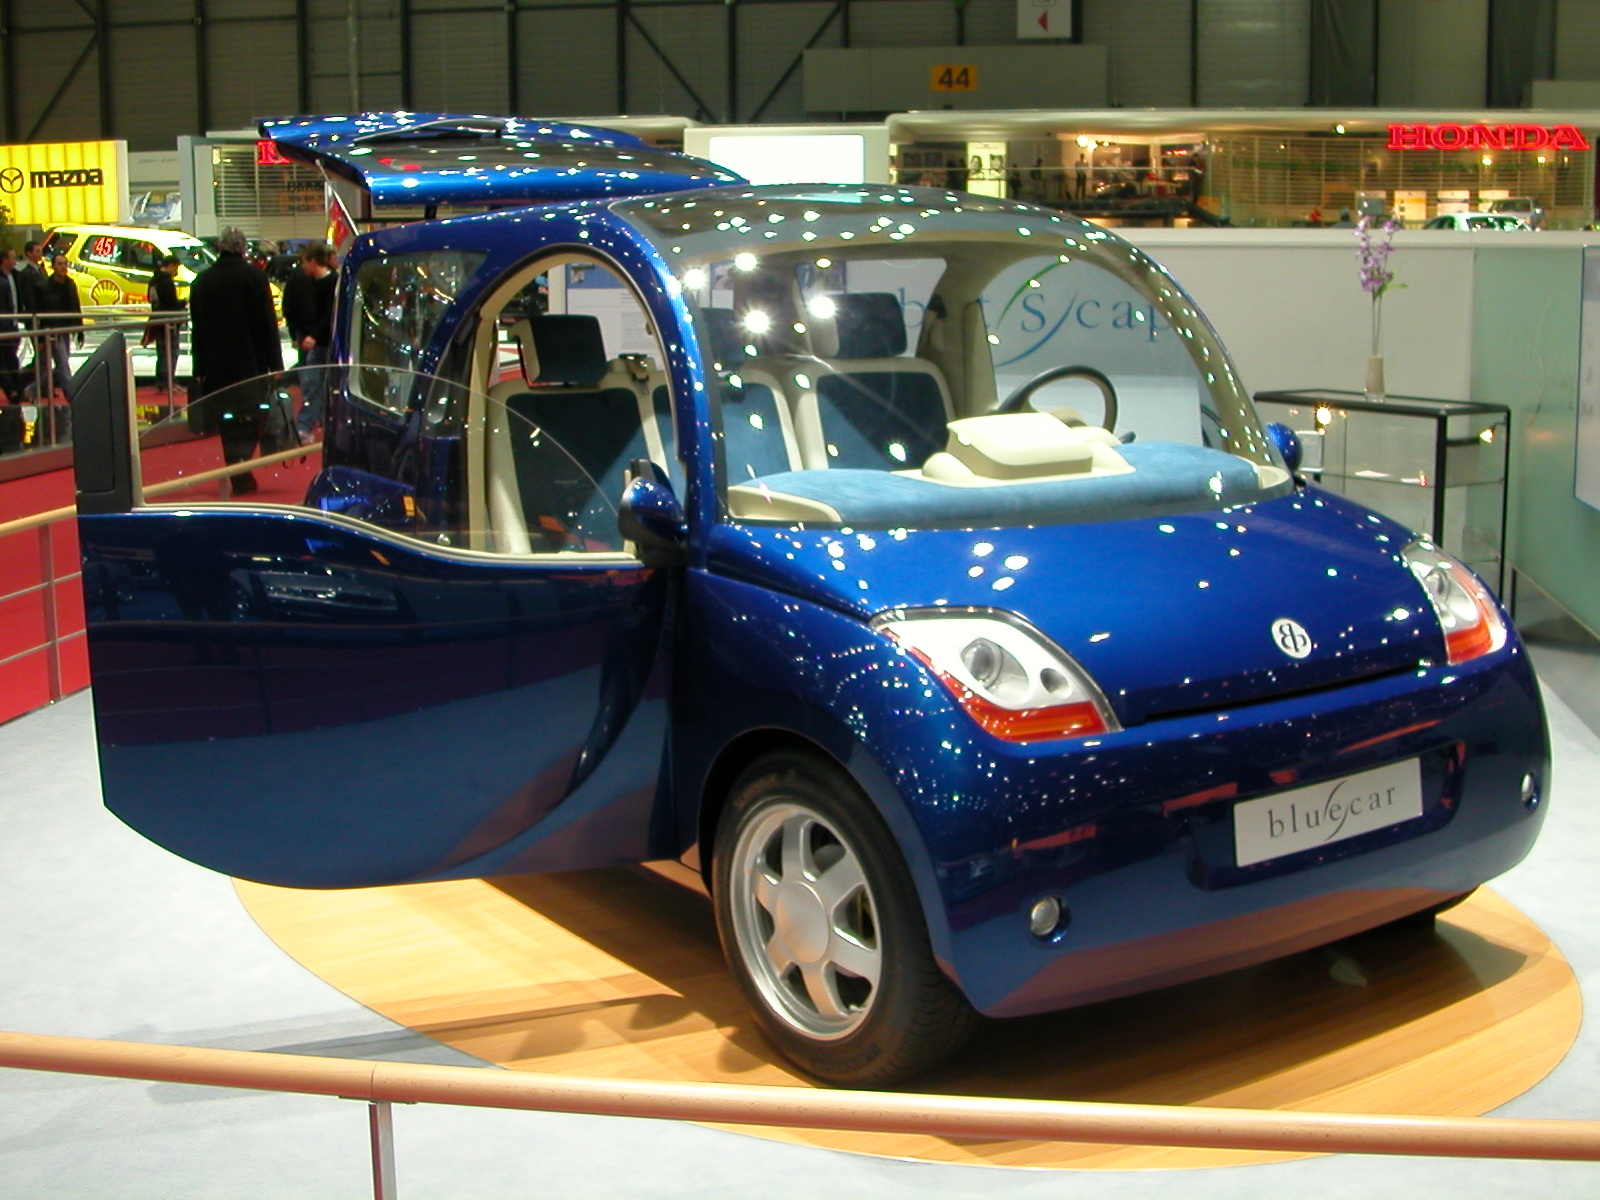 Bolloré_Blue_Car Credit wikipedia